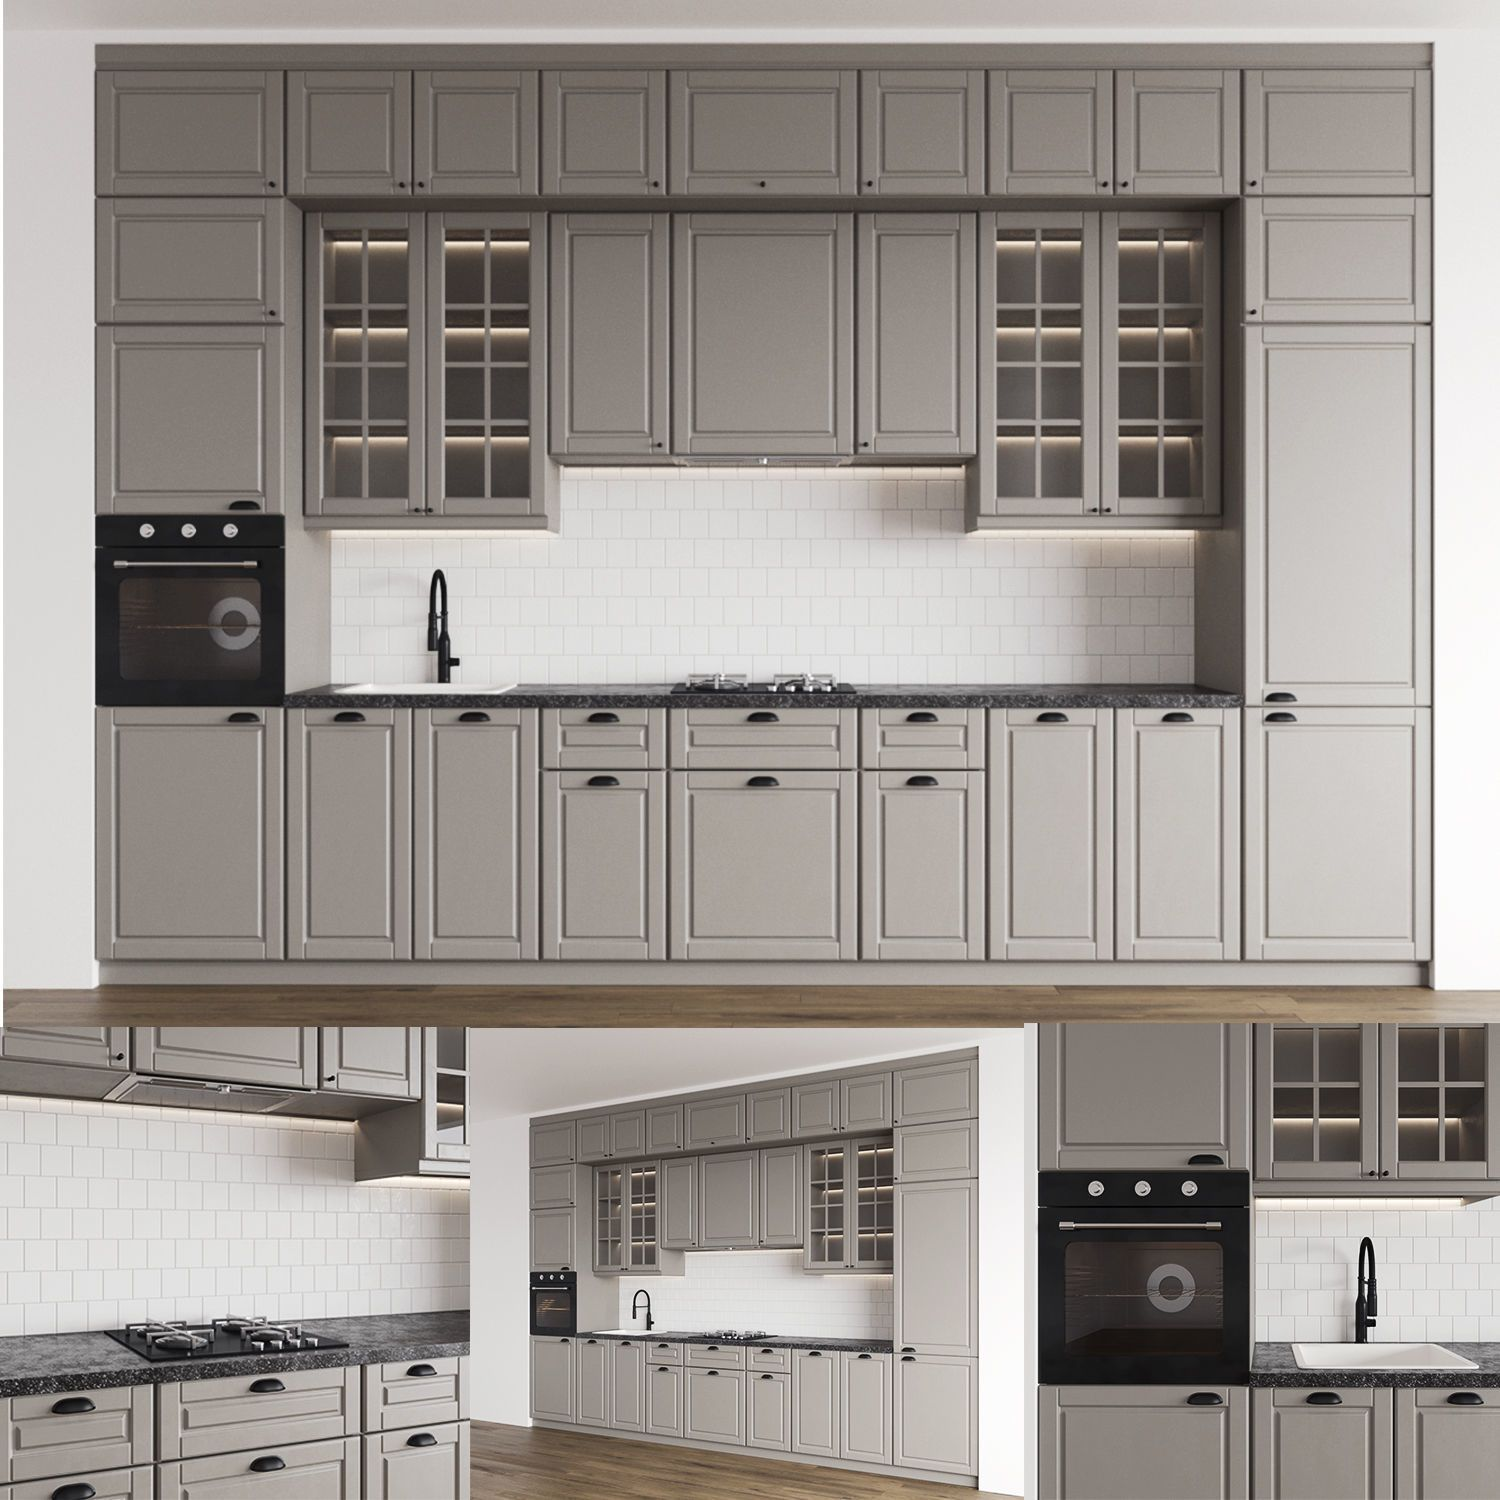 Kitchen 3 3d Model In 2020 Kitchen Models Modern Kitchen Interiors Kitchen Cabinets Models